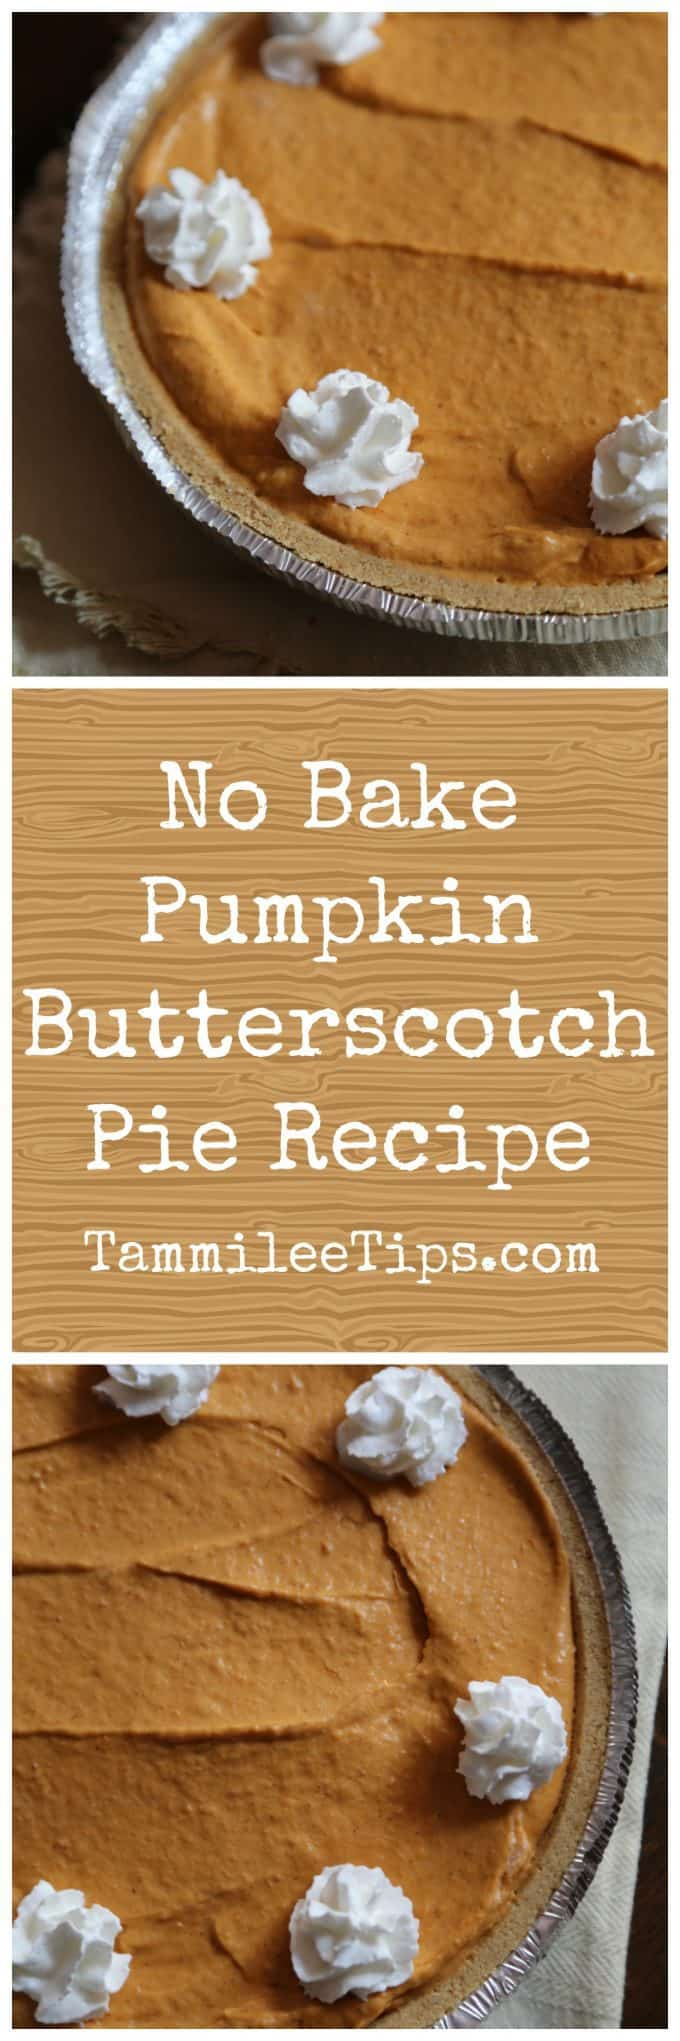 Easy No Bake Pumpkin Butterscotch Pie perfect for Thanksgiving, Christmas, Holiday parties! This no bake pies recipe is delicious! This dessert is great for the entire family.